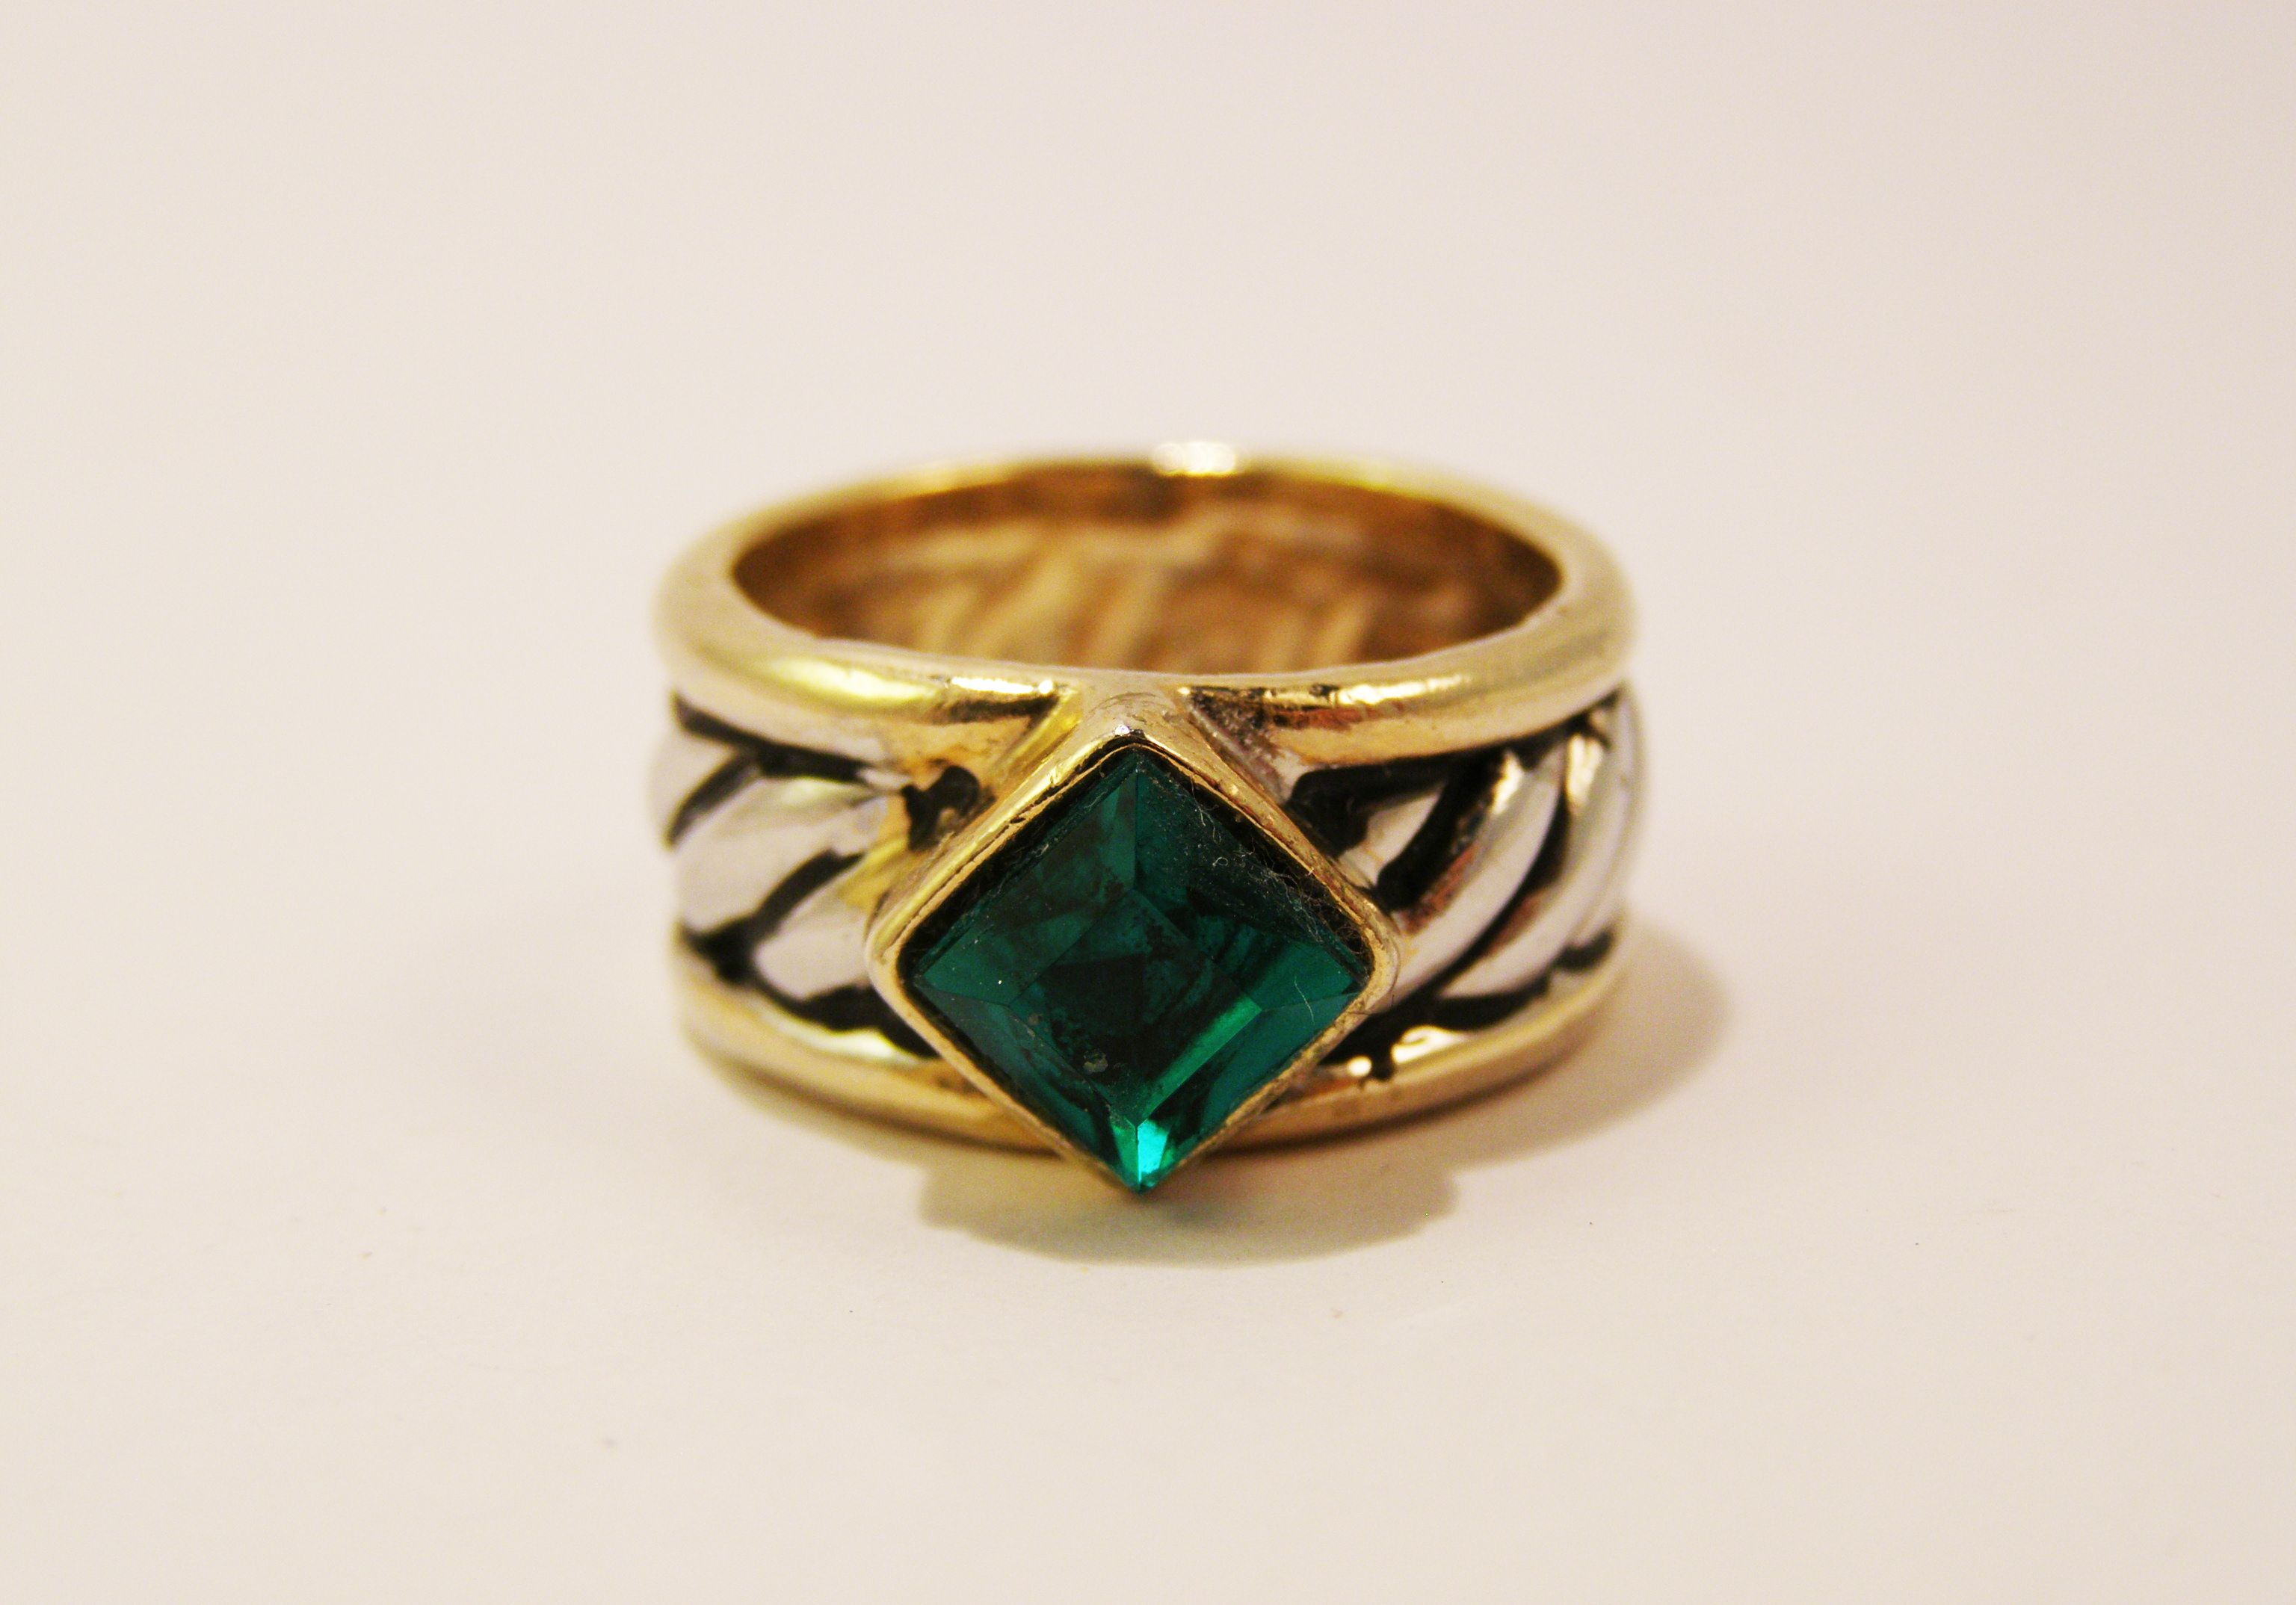 emerald ring sold vintage costume jewelry